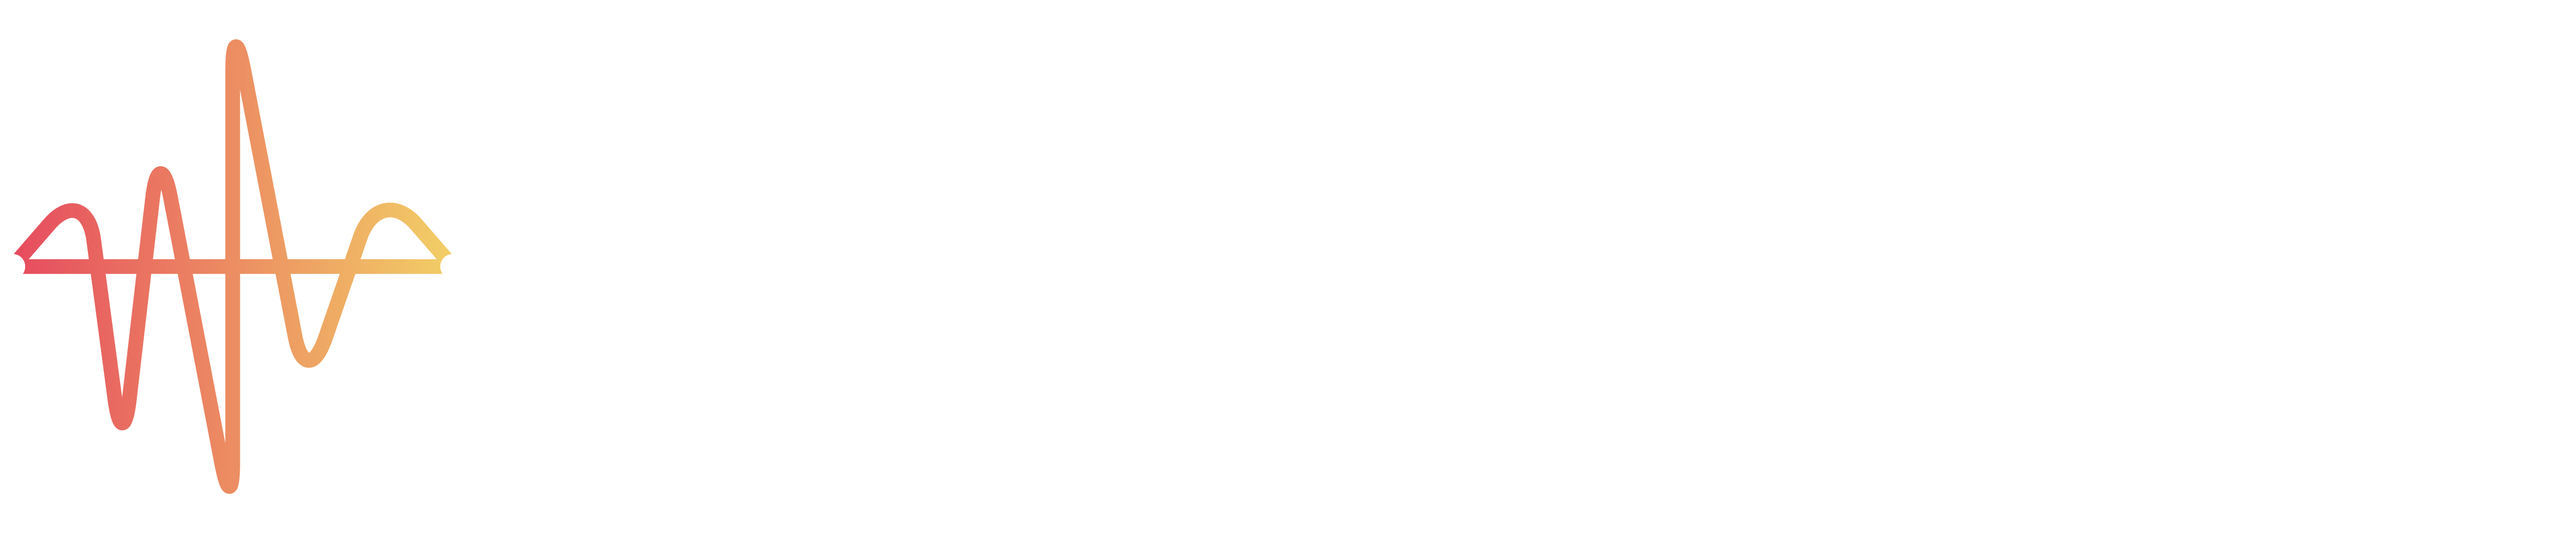 foodservice__logo-trans-png.png